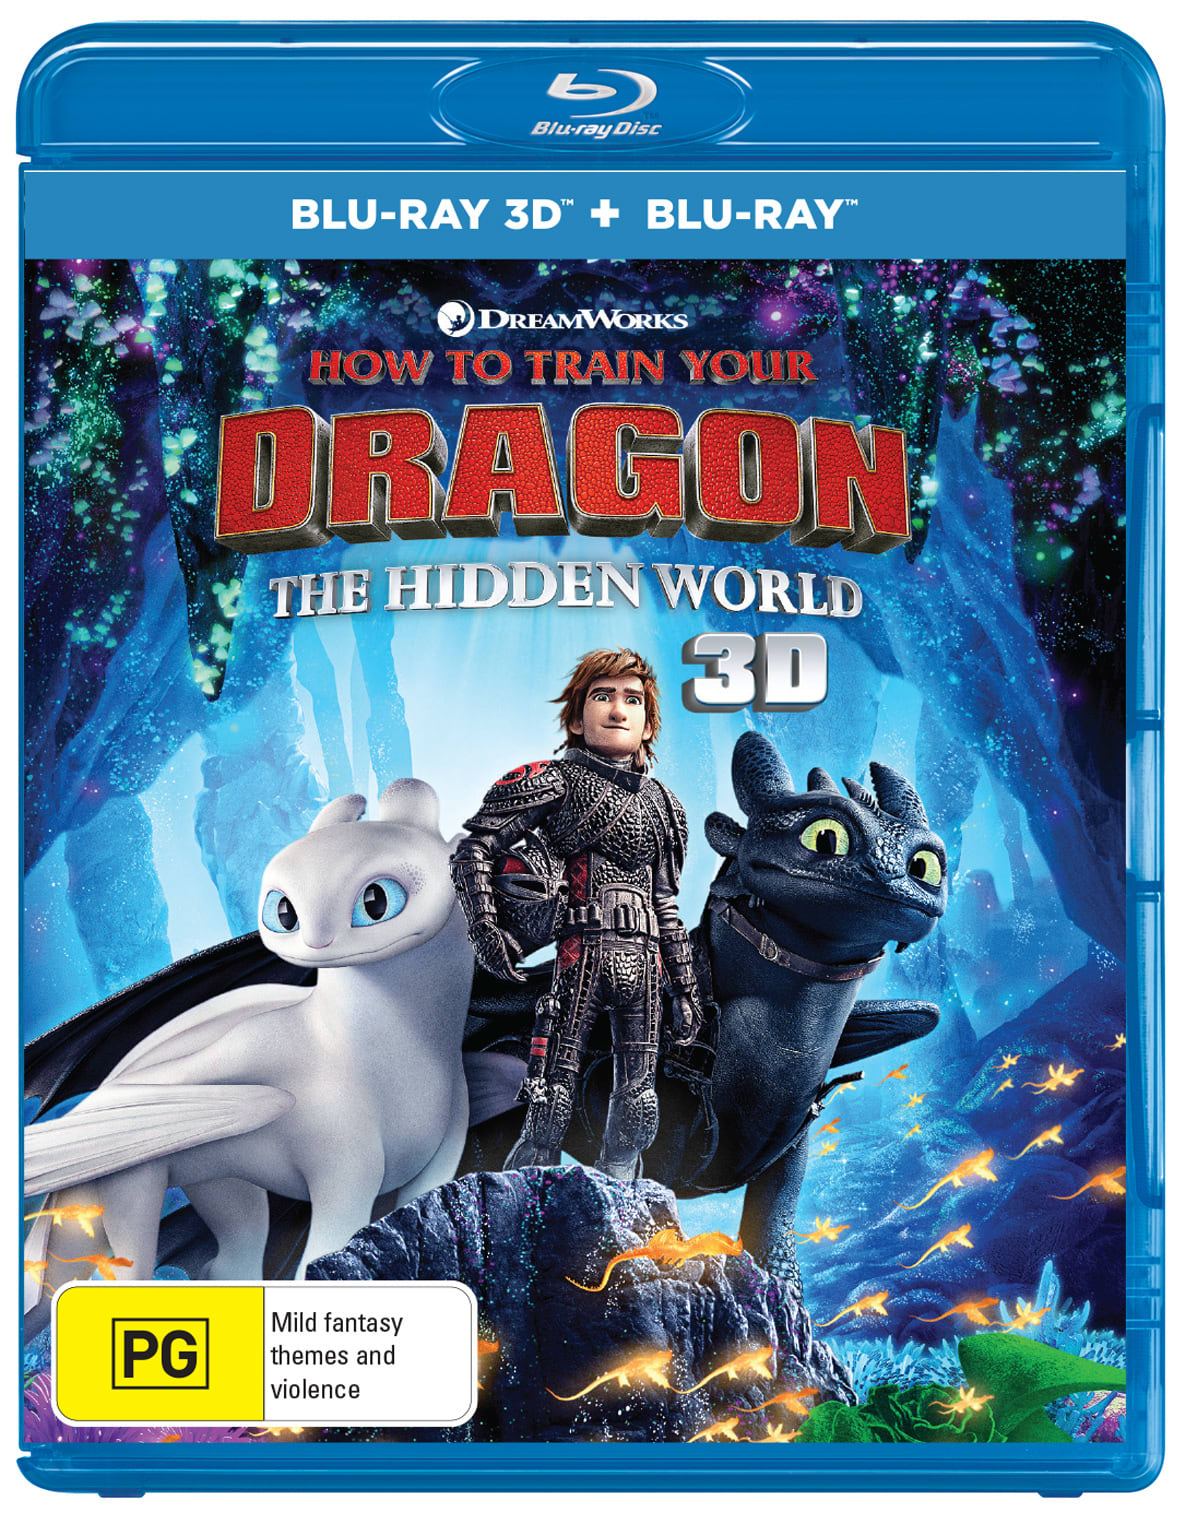 How to Train Your Dragon - The Hidden World (3D Edition with 2D Edition) [Blu-ray]